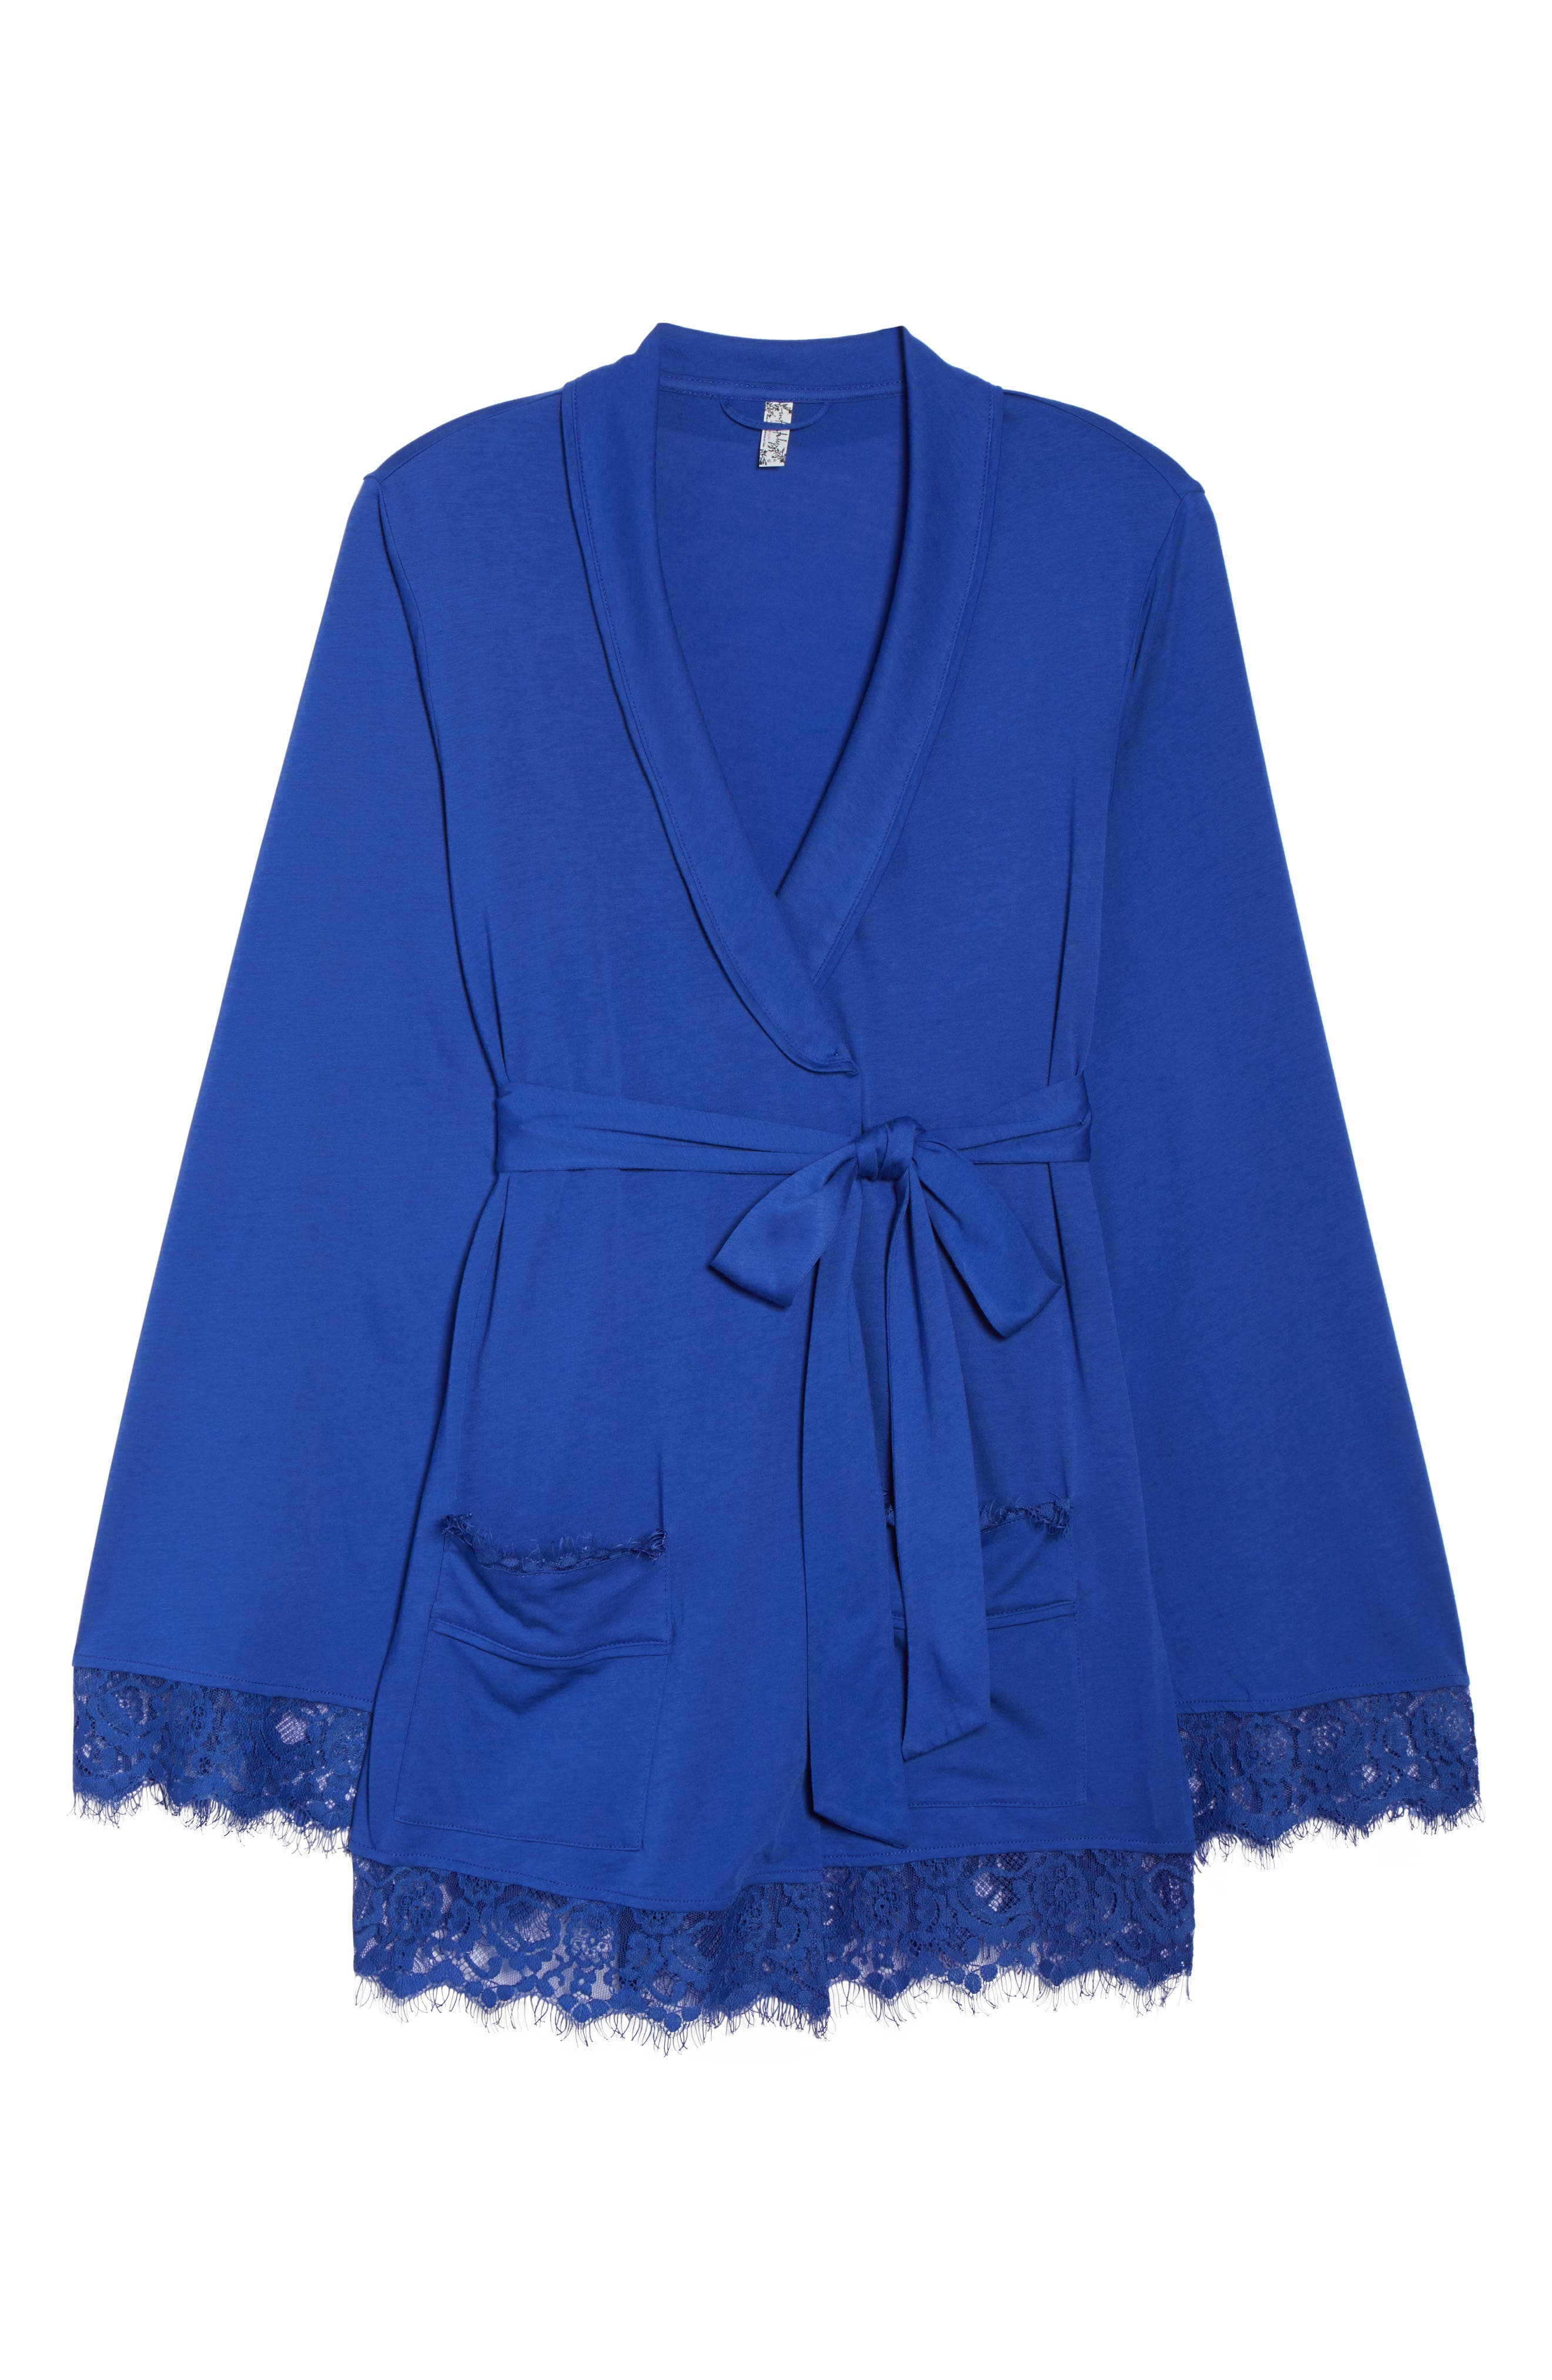 Sweetest Thing Robe,                             Alternate thumbnail 4, color,                             Blue